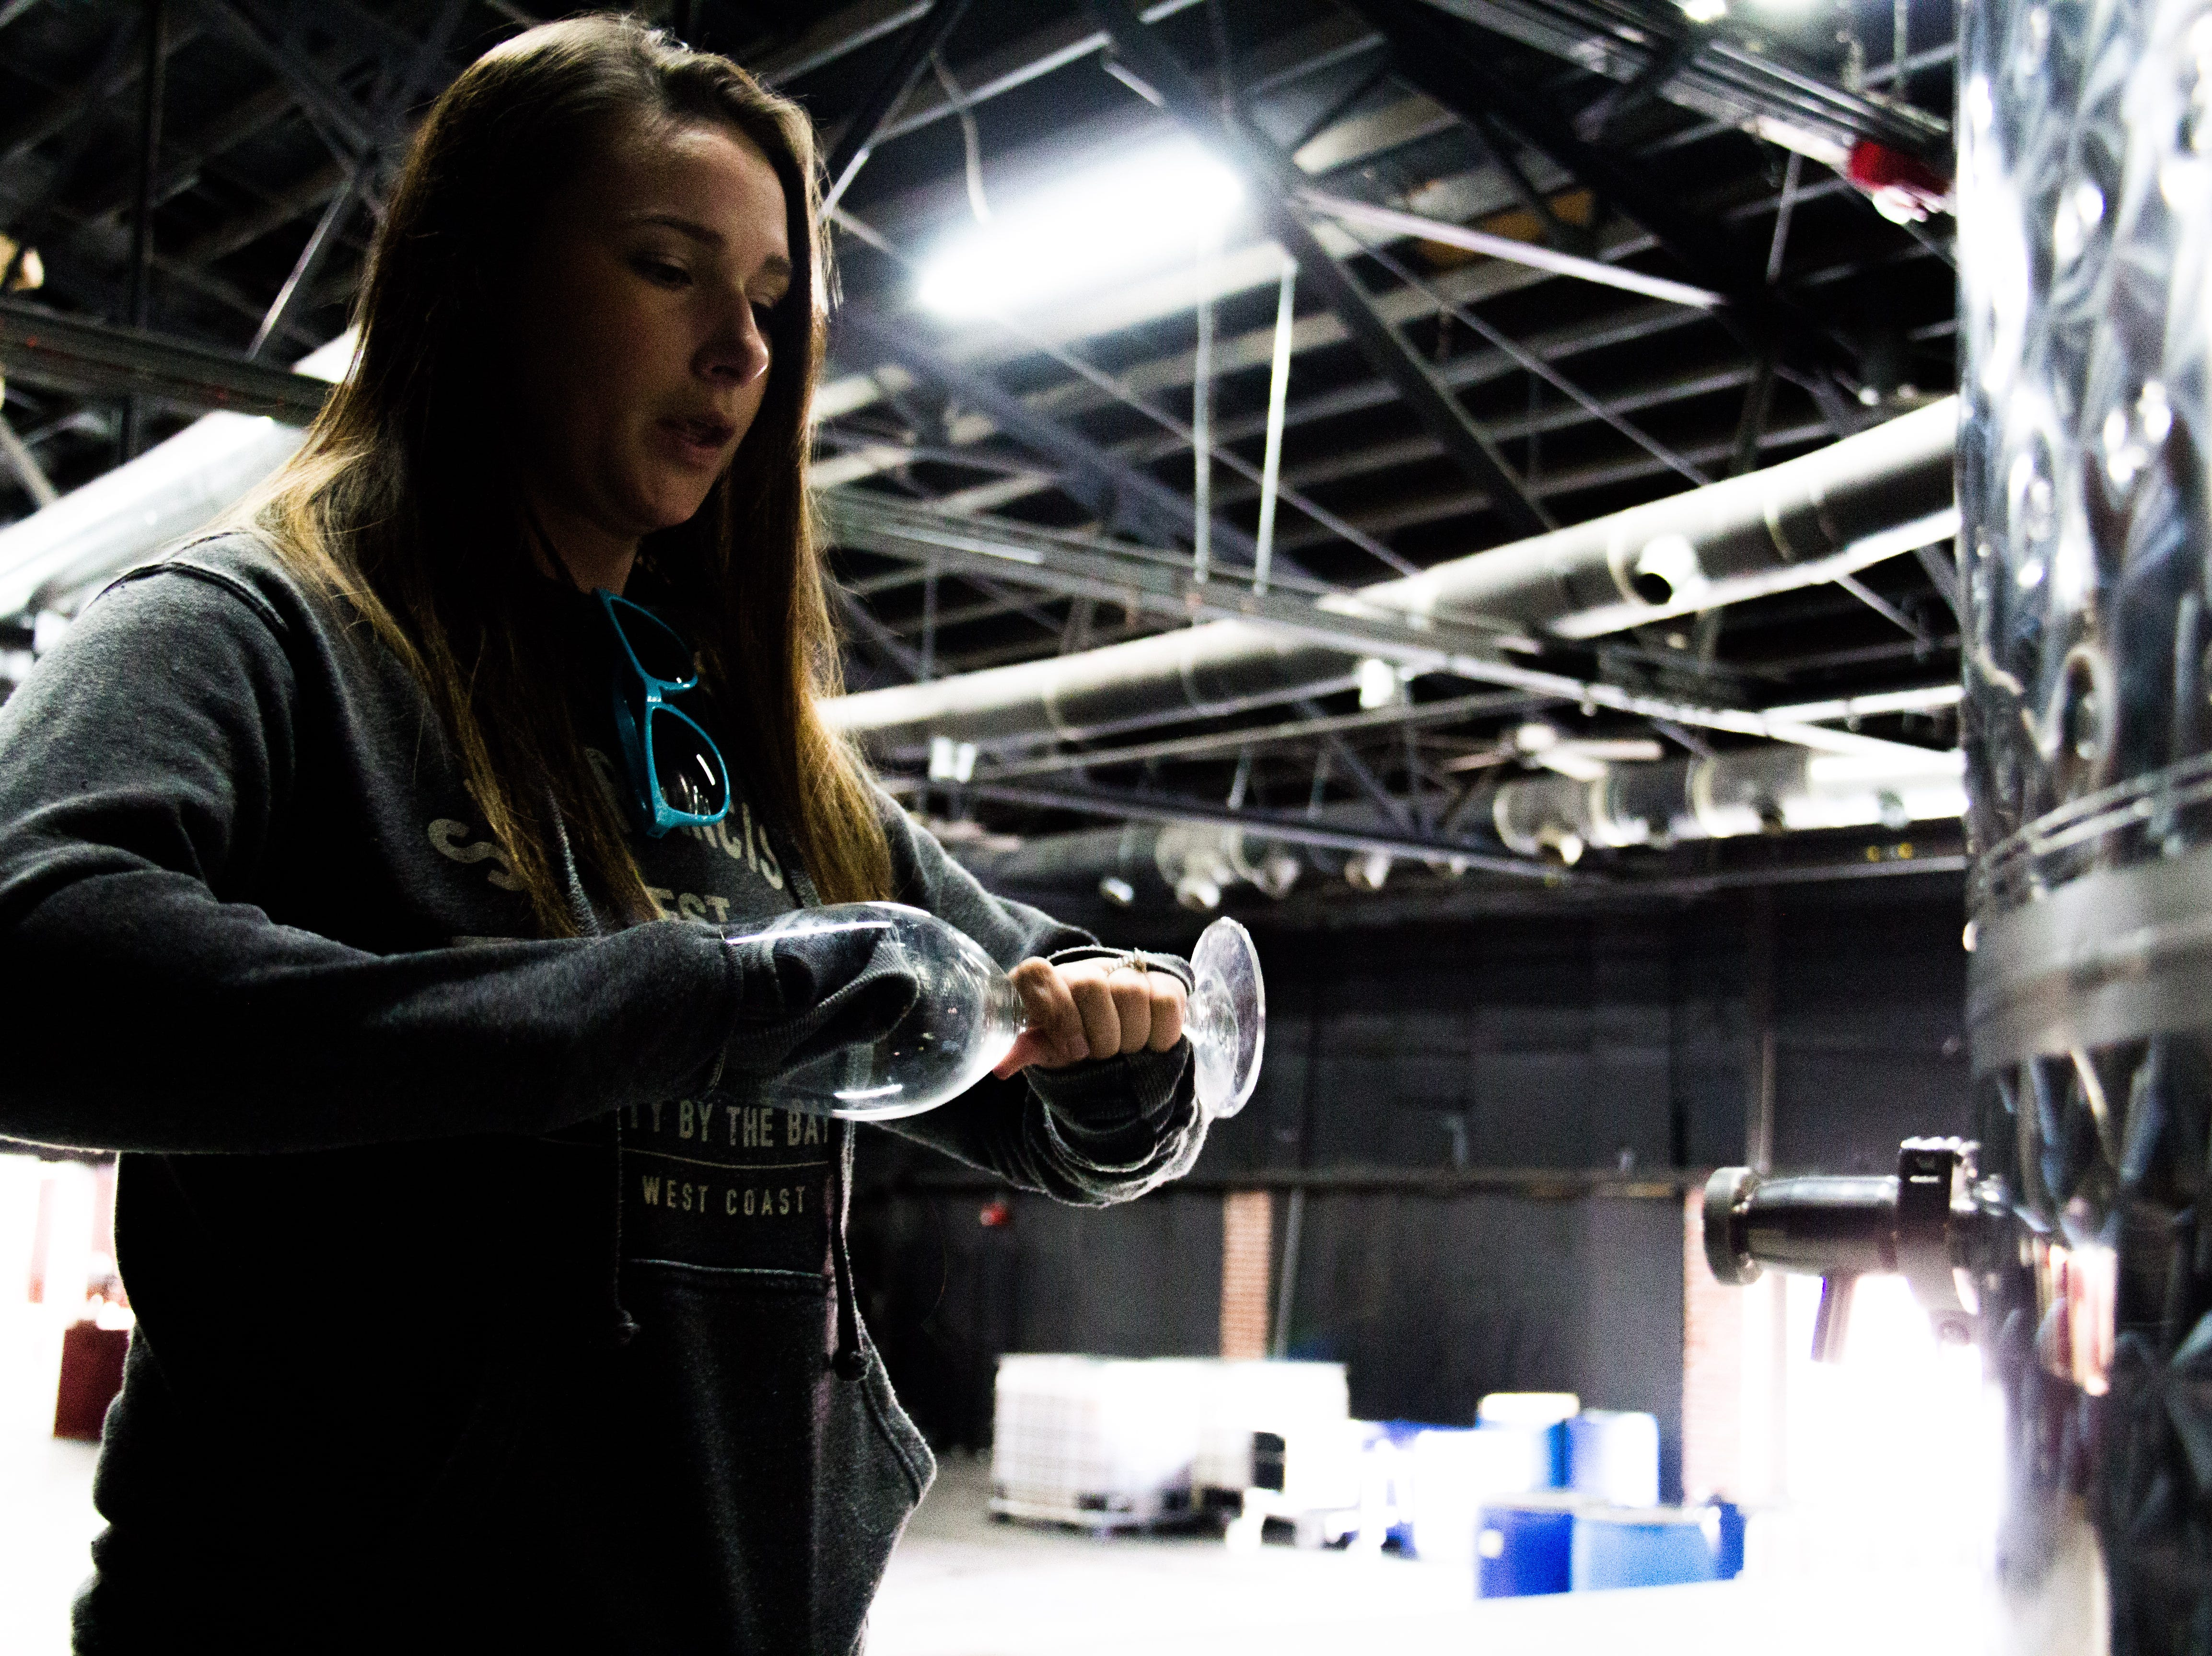 Katie Galyon, owner of the Winery at The International, prepares to pour a glass of wine from a tank on Oct. 31, 2018.